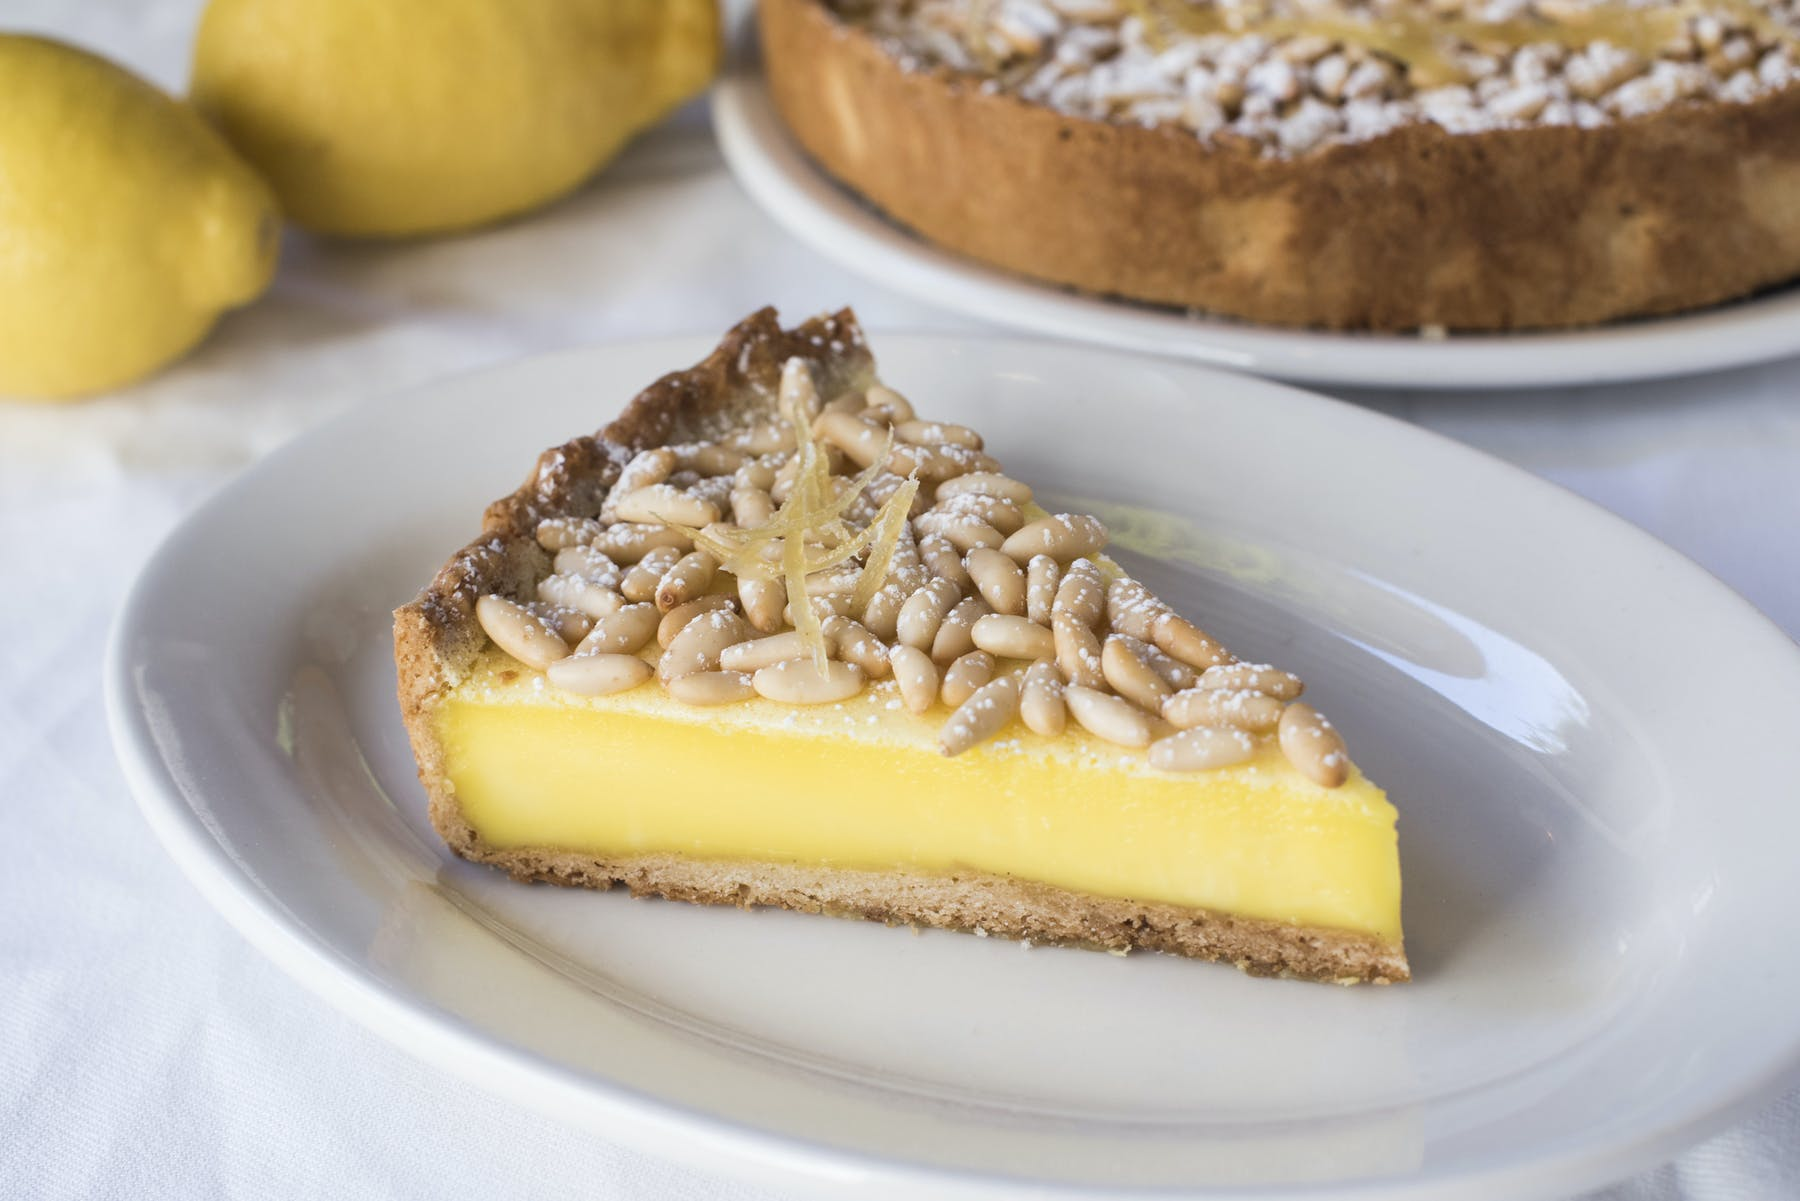 Maialino's torta della nonna with lemon custard and pine nuts